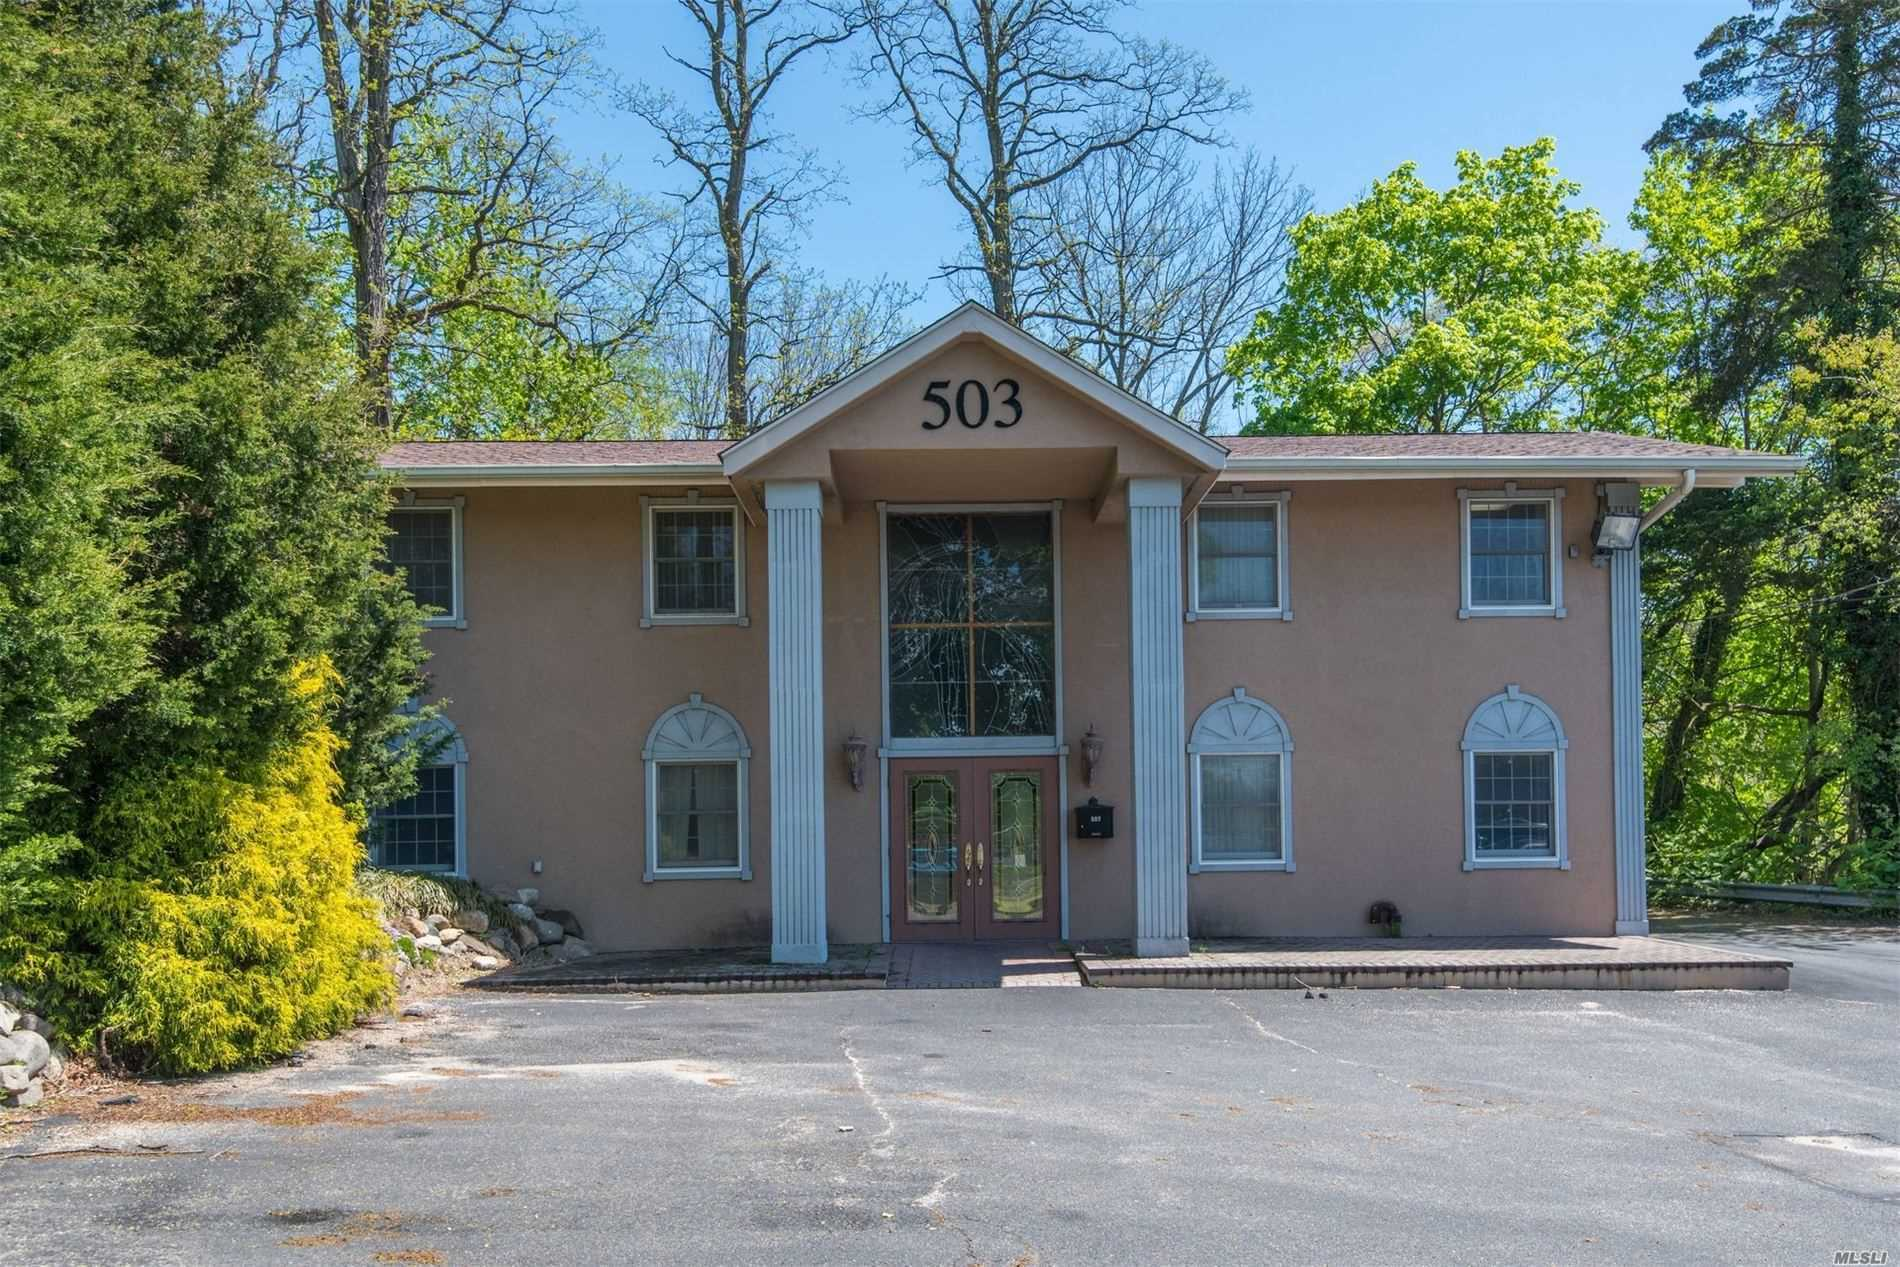 Acquisto commerciale in 503 Route 111, Hauppauge, NY ,11788